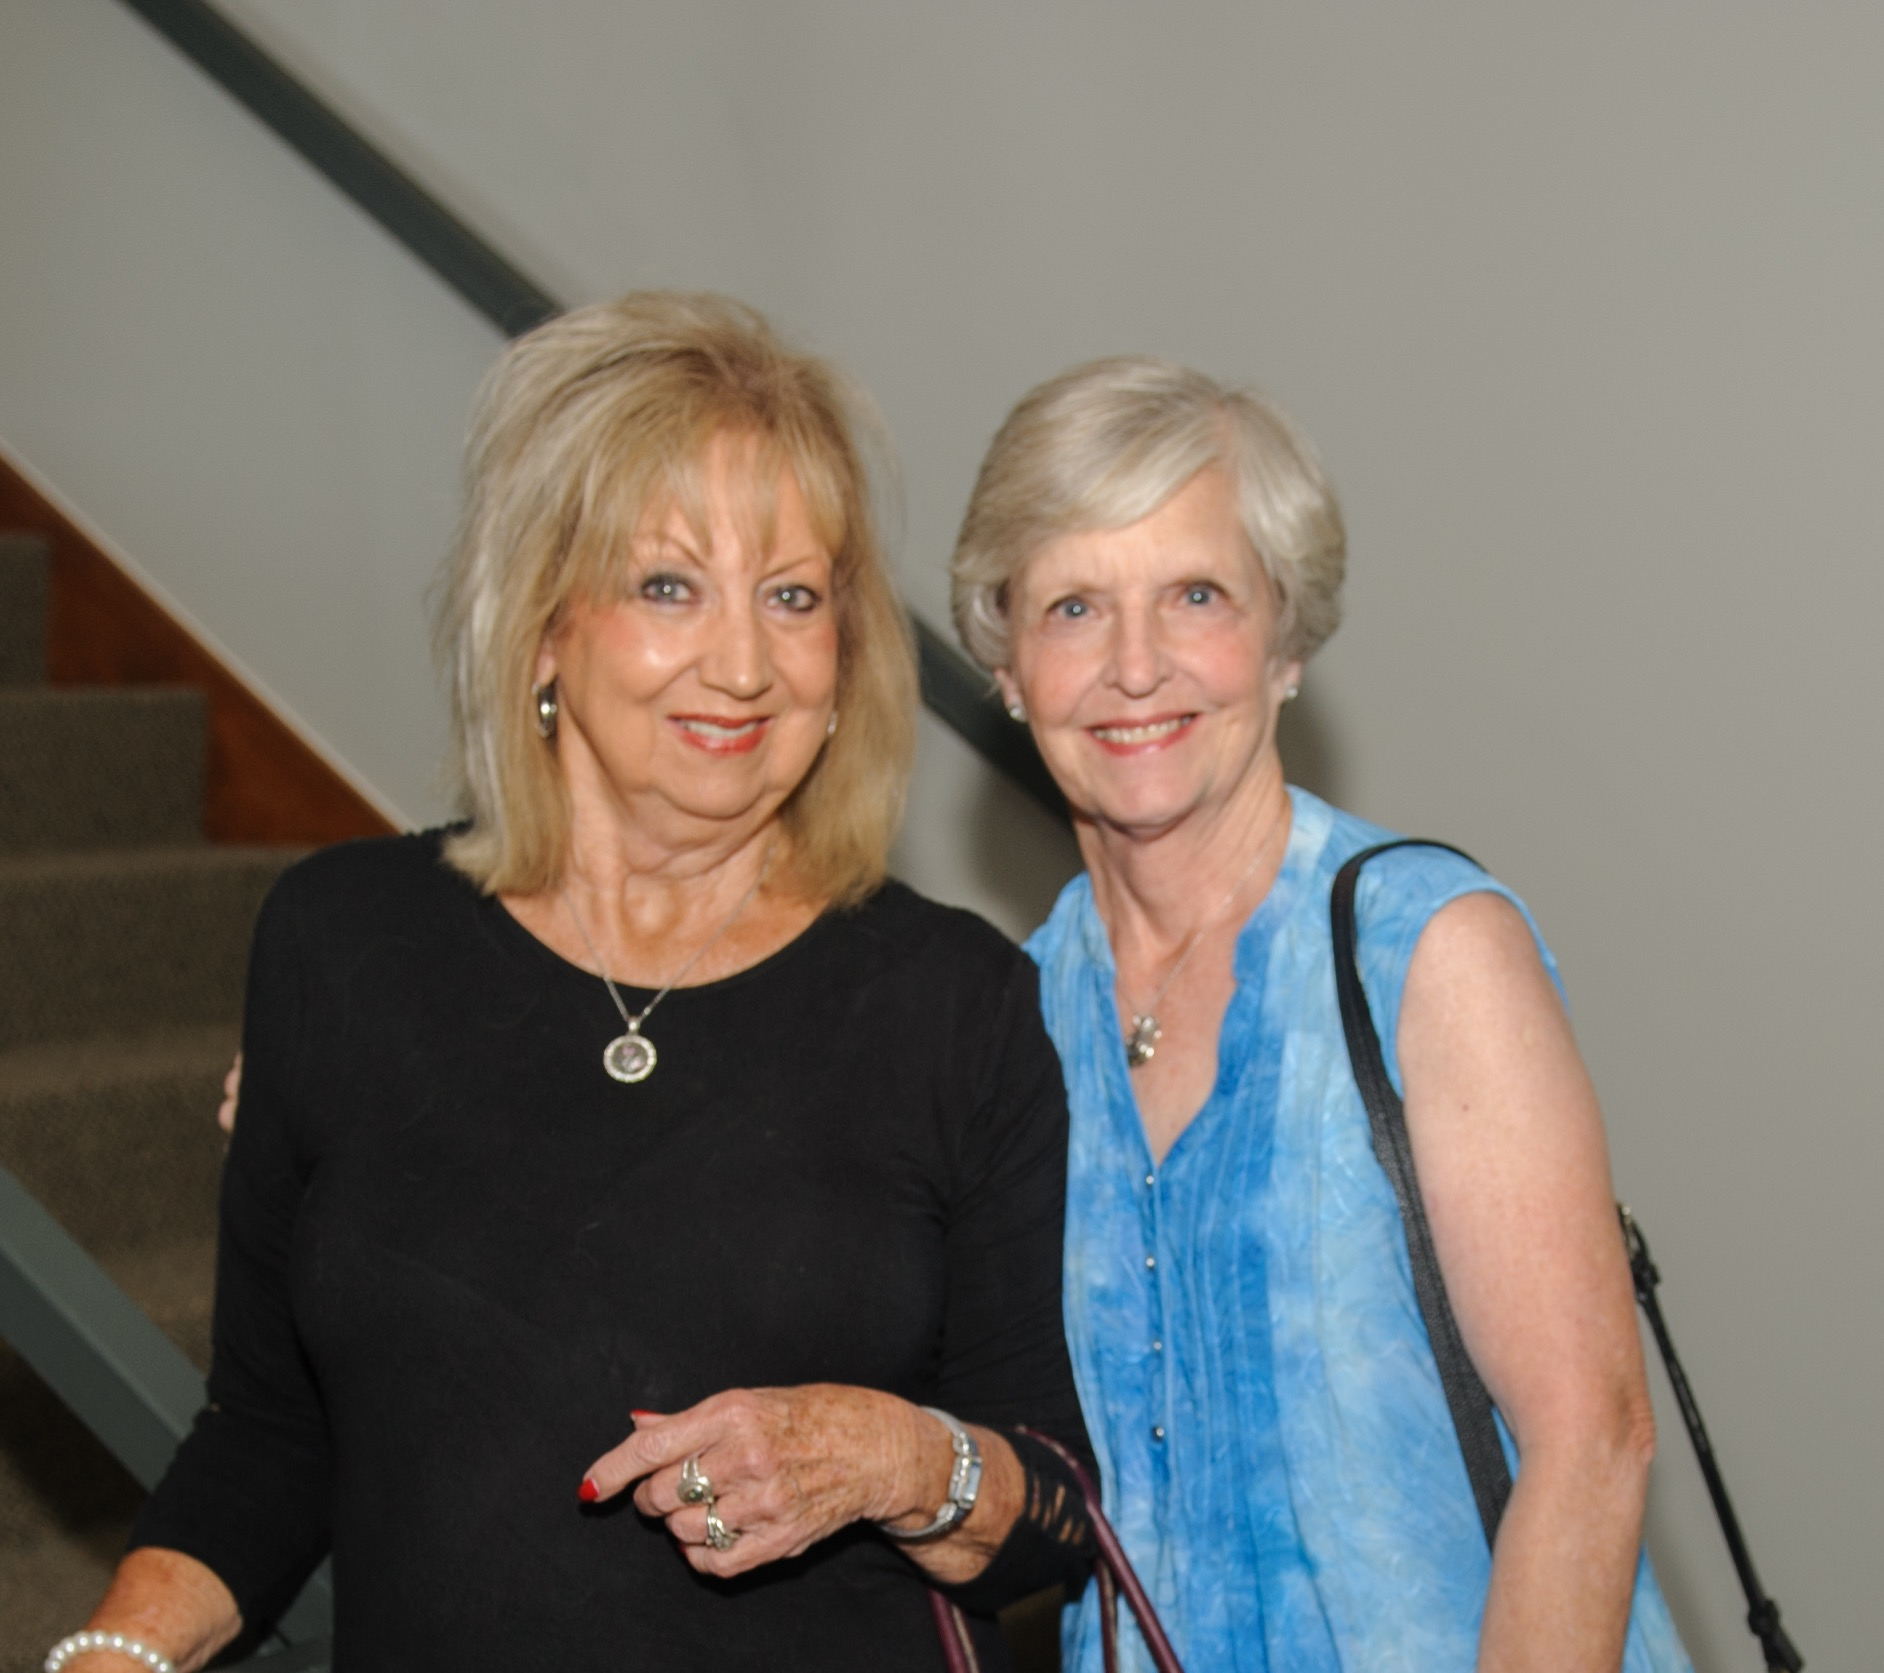 Margaret and Kathy